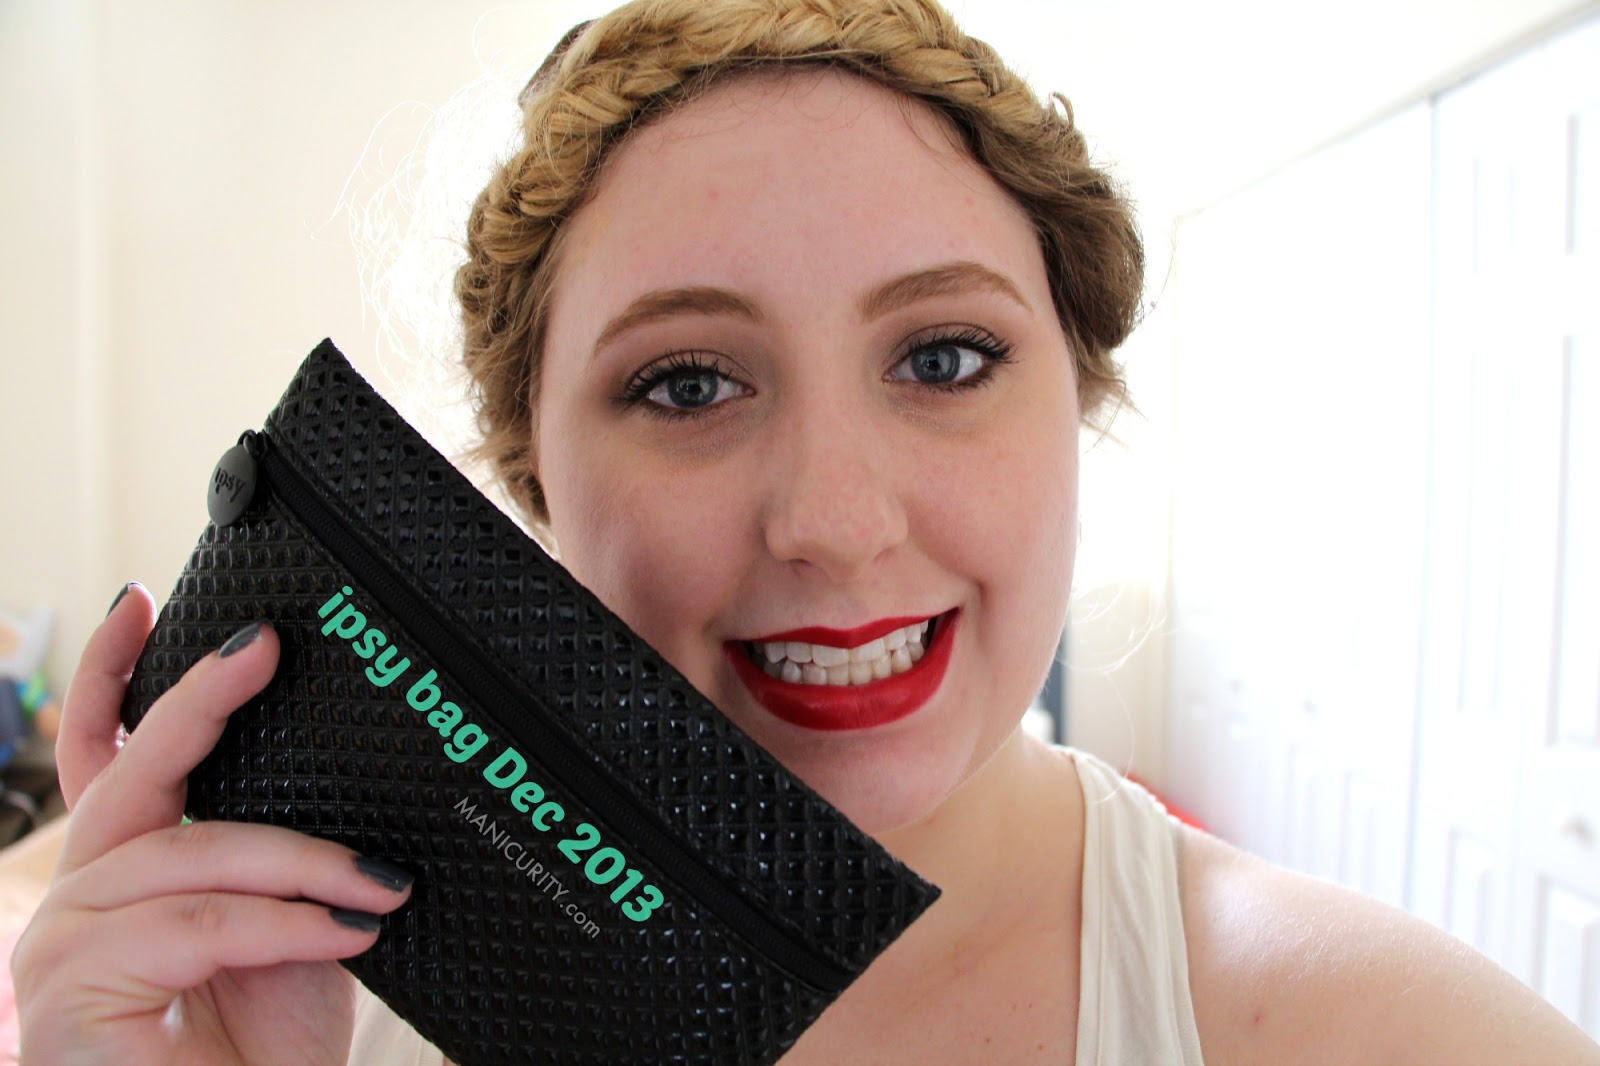 Manicurity - Ipsy Glam Bag December 2013 Hits & Misses